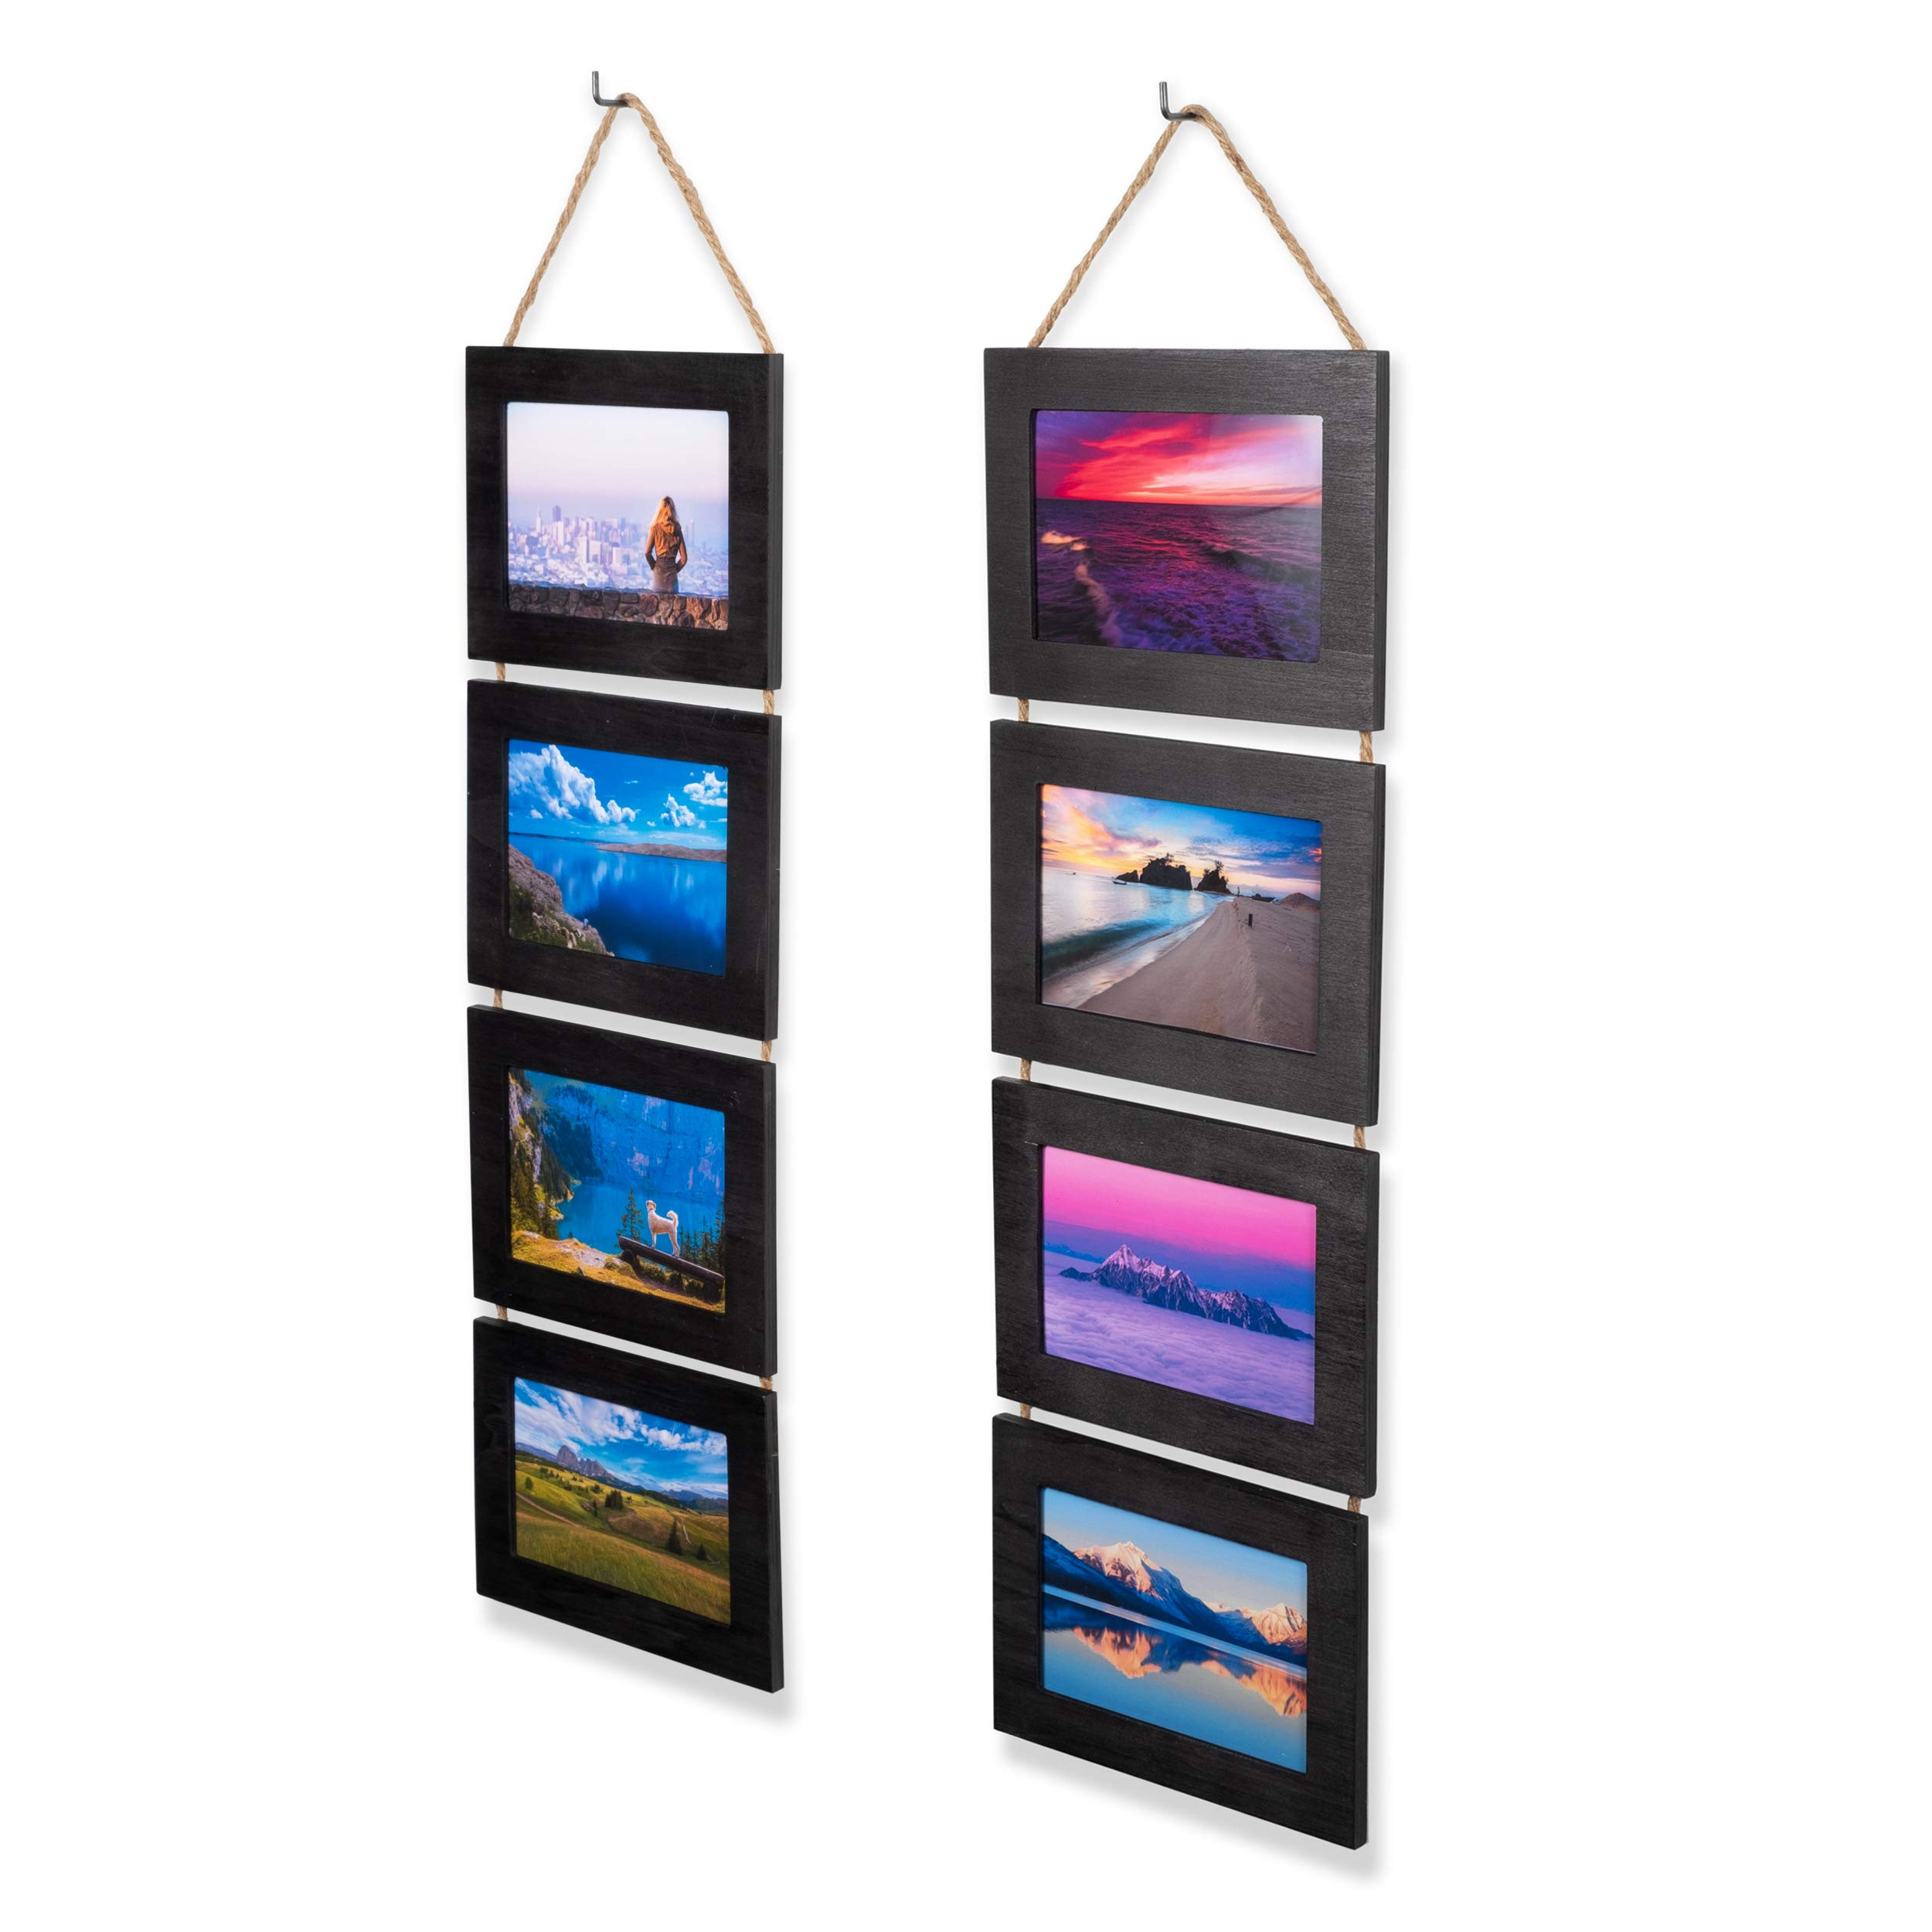 Wallniture Wood Photo Collage Picture Frame Black Finish Total 8 Opening for 4x6 Inch Photos Wall Mountable Ready to Hang Vertical Gallery Décor by Wallniture